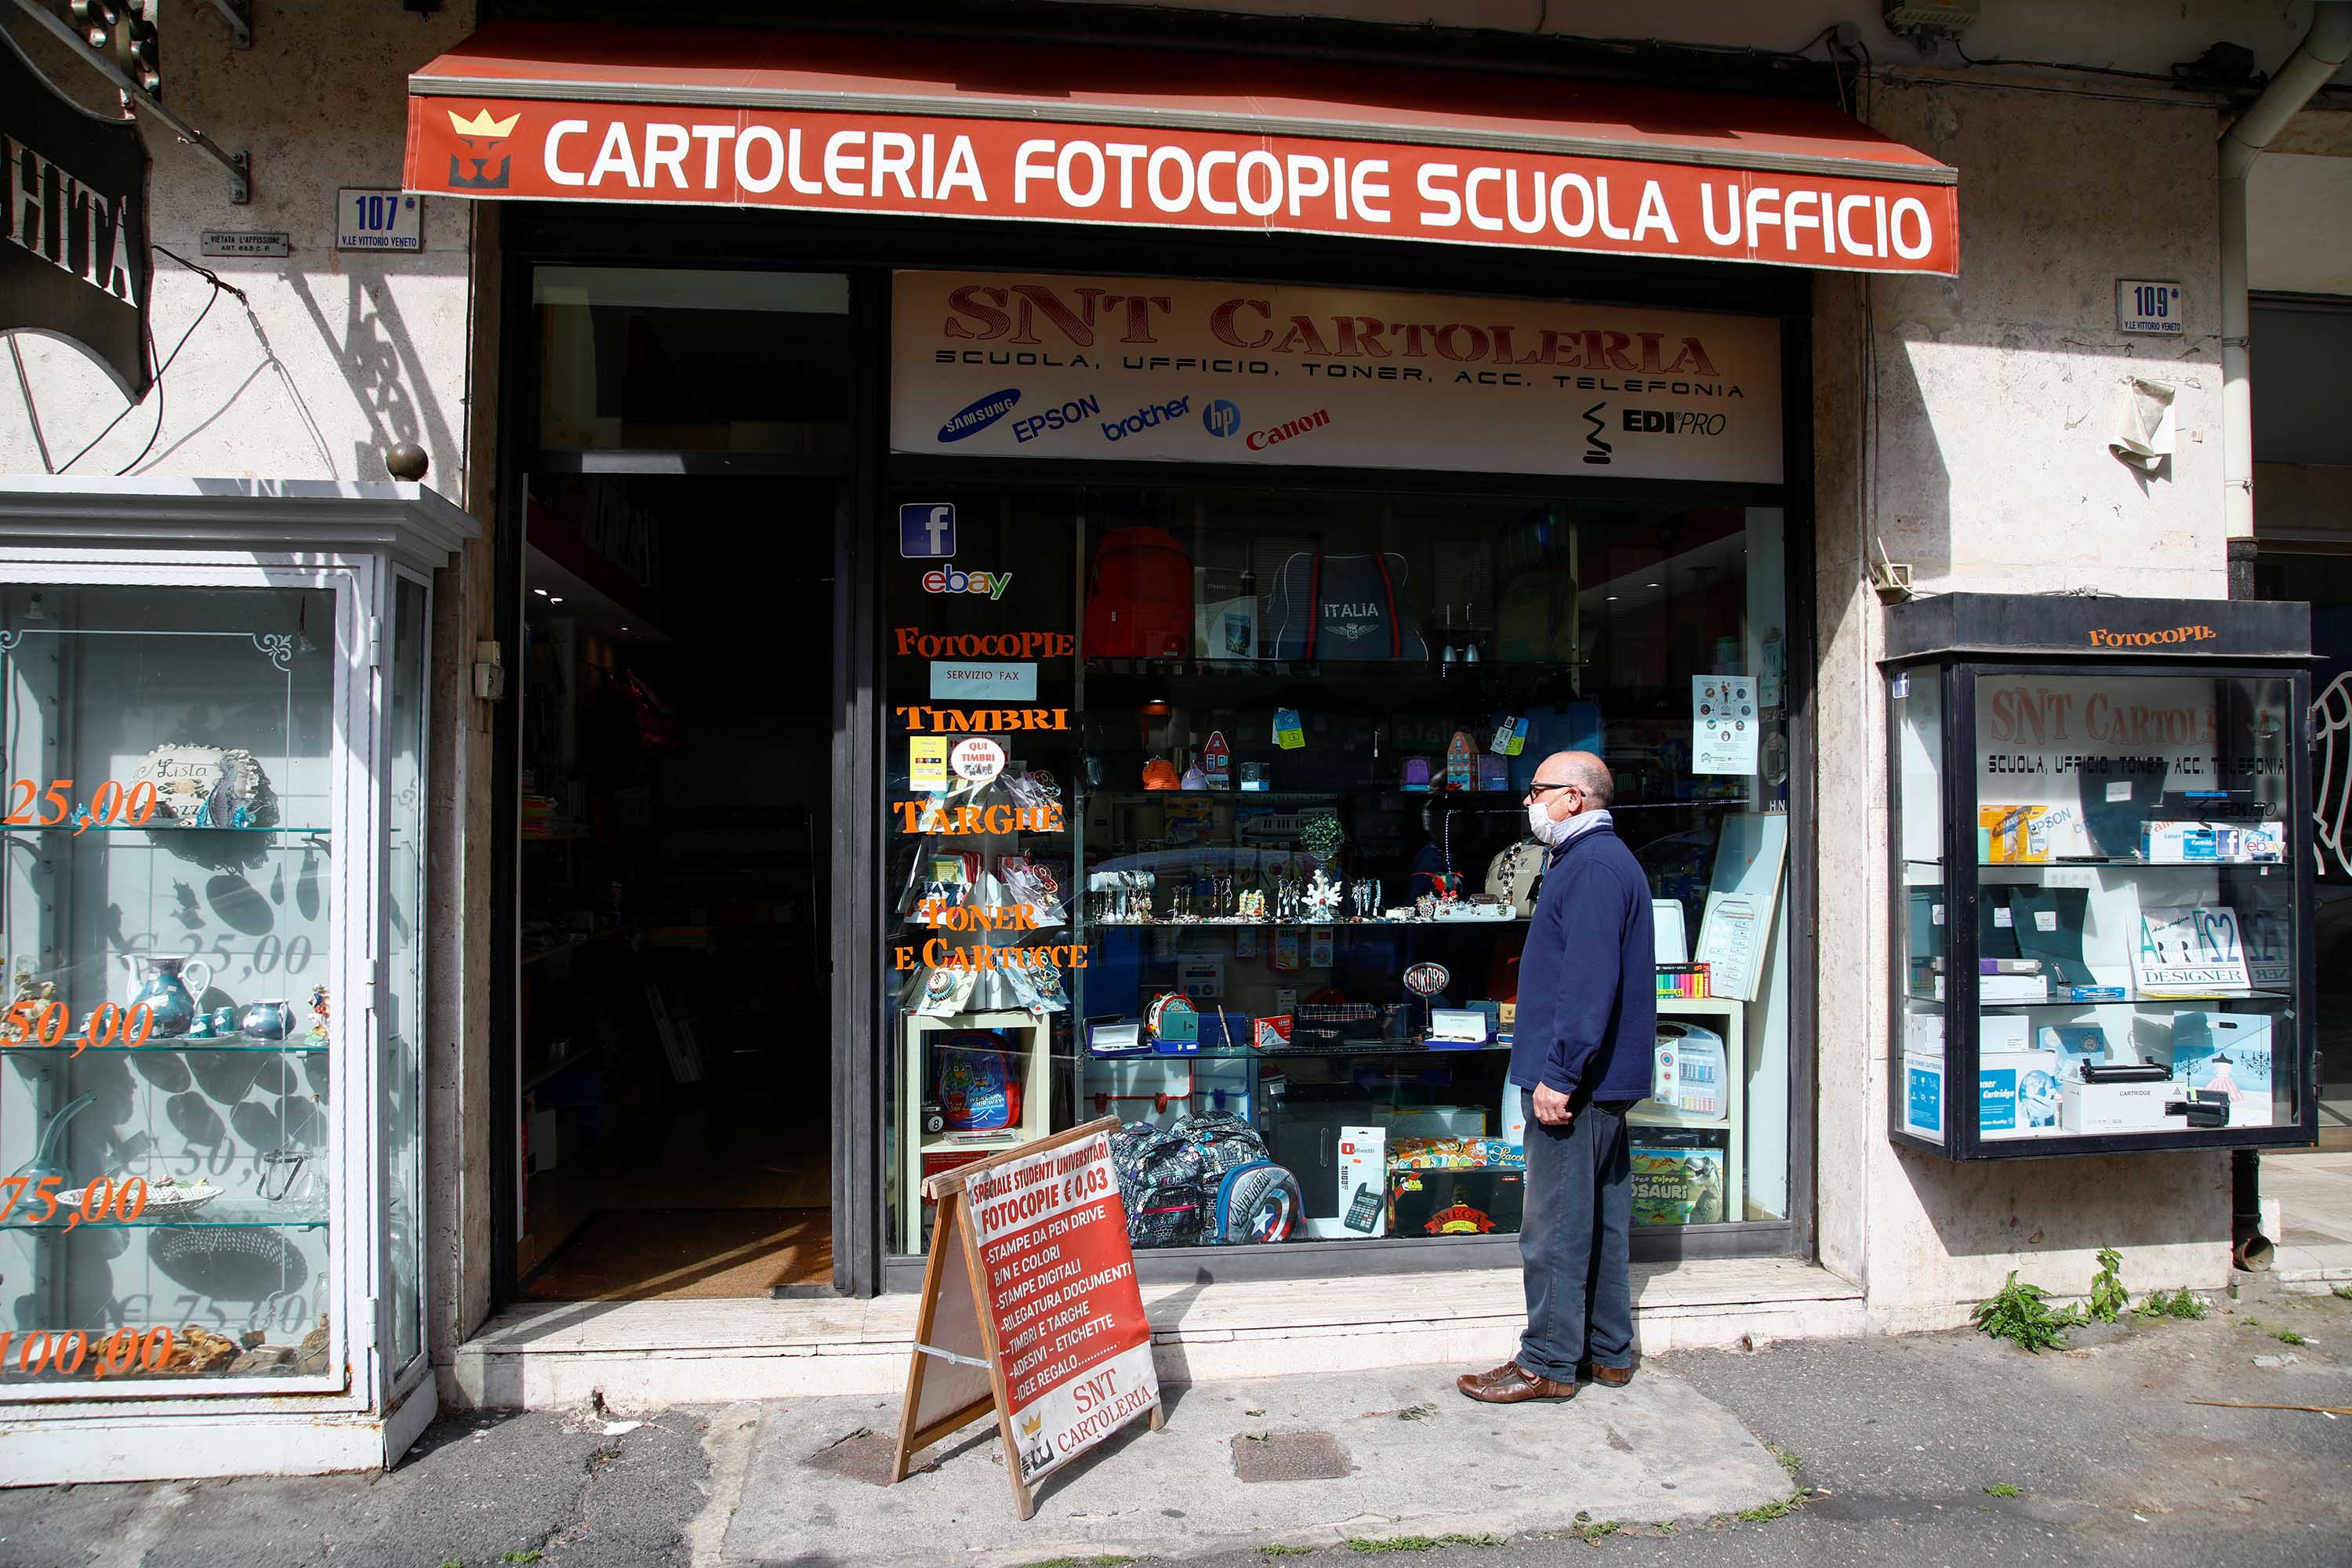 A man stands in front of a store in Catania, Italy, after the Italian government allowed some shops to reopen on April 14.